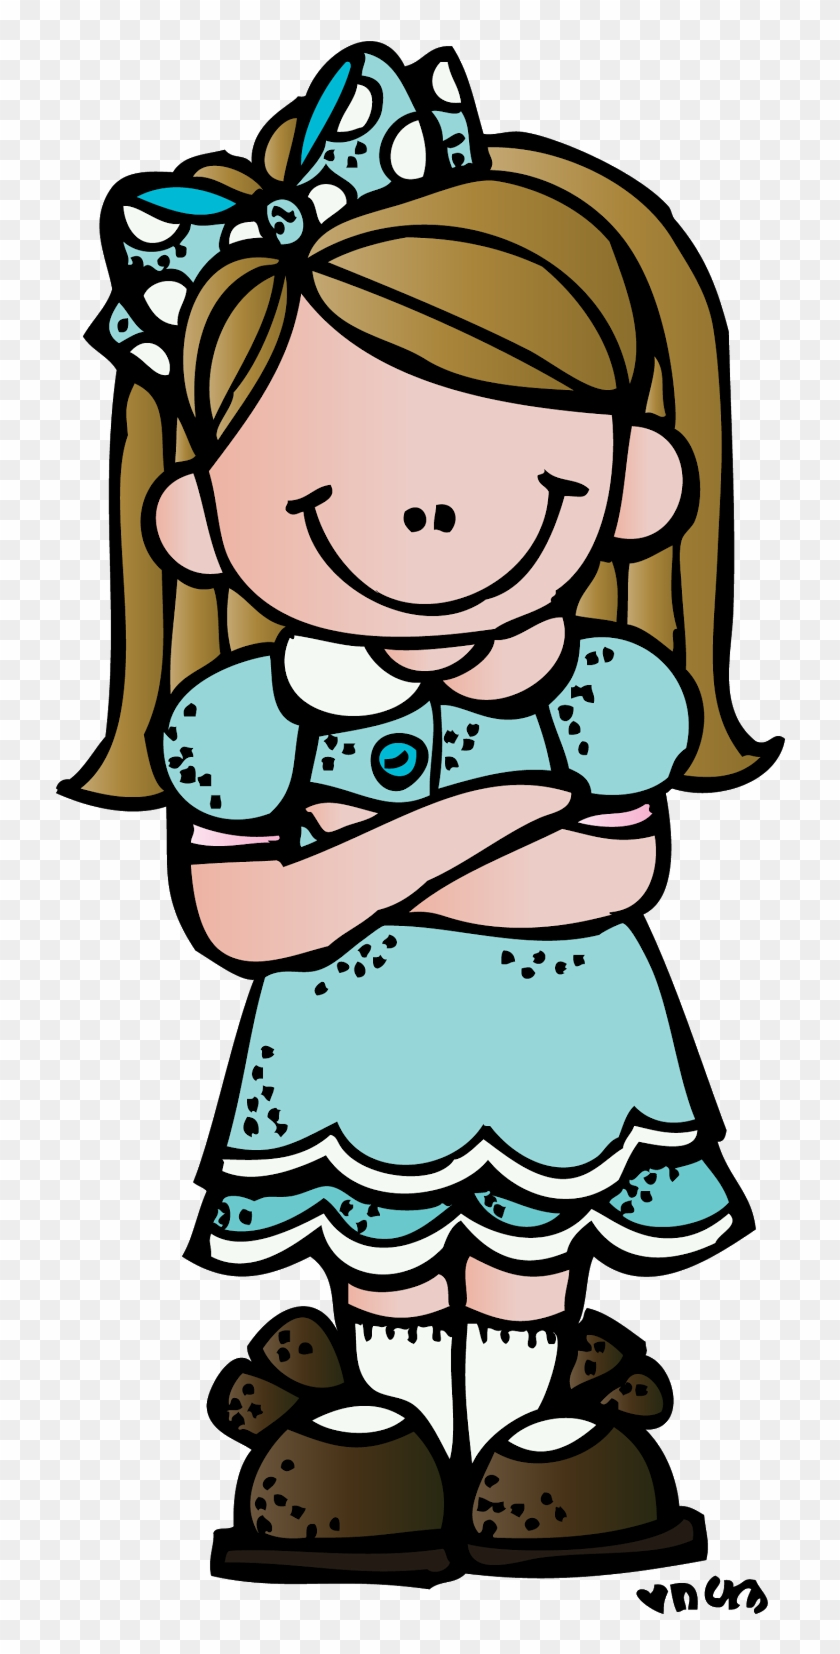 Arms Folded In Prayer Clipart - Melonheadz Girl #3476